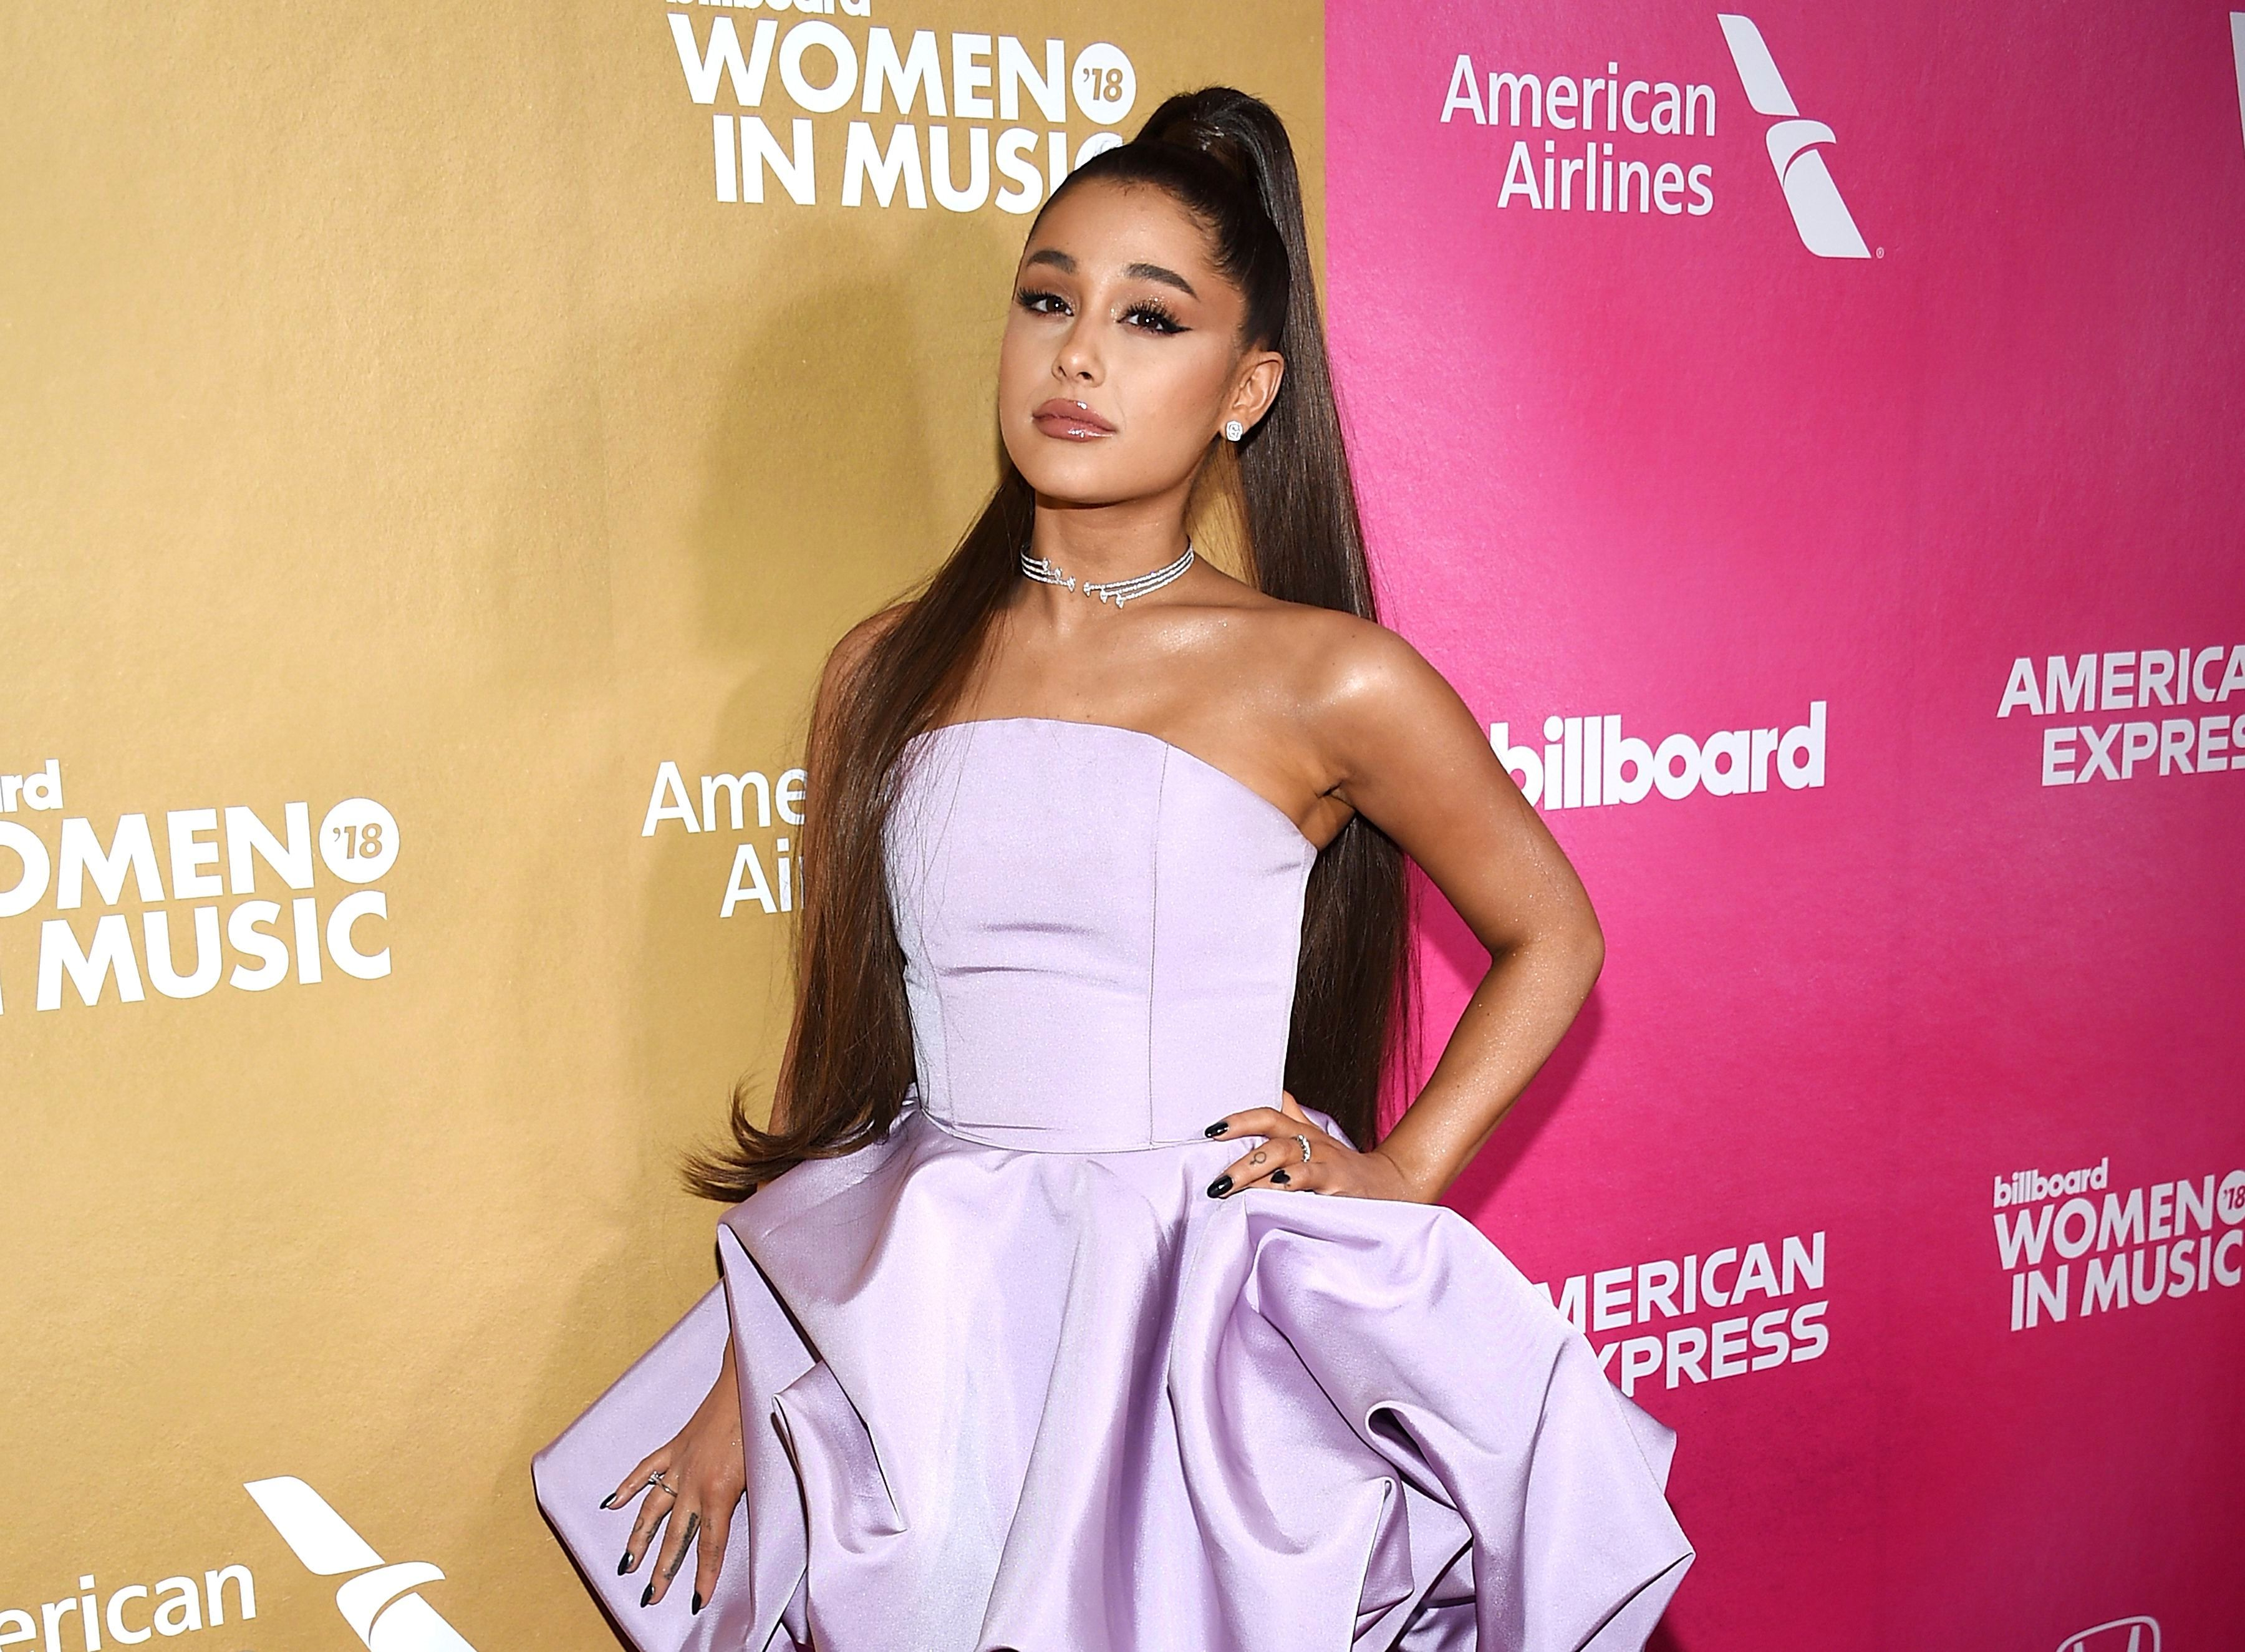 Ariana Grande Spends Quality Time With Her Dad in Europe: 'So Happy and Grateful'